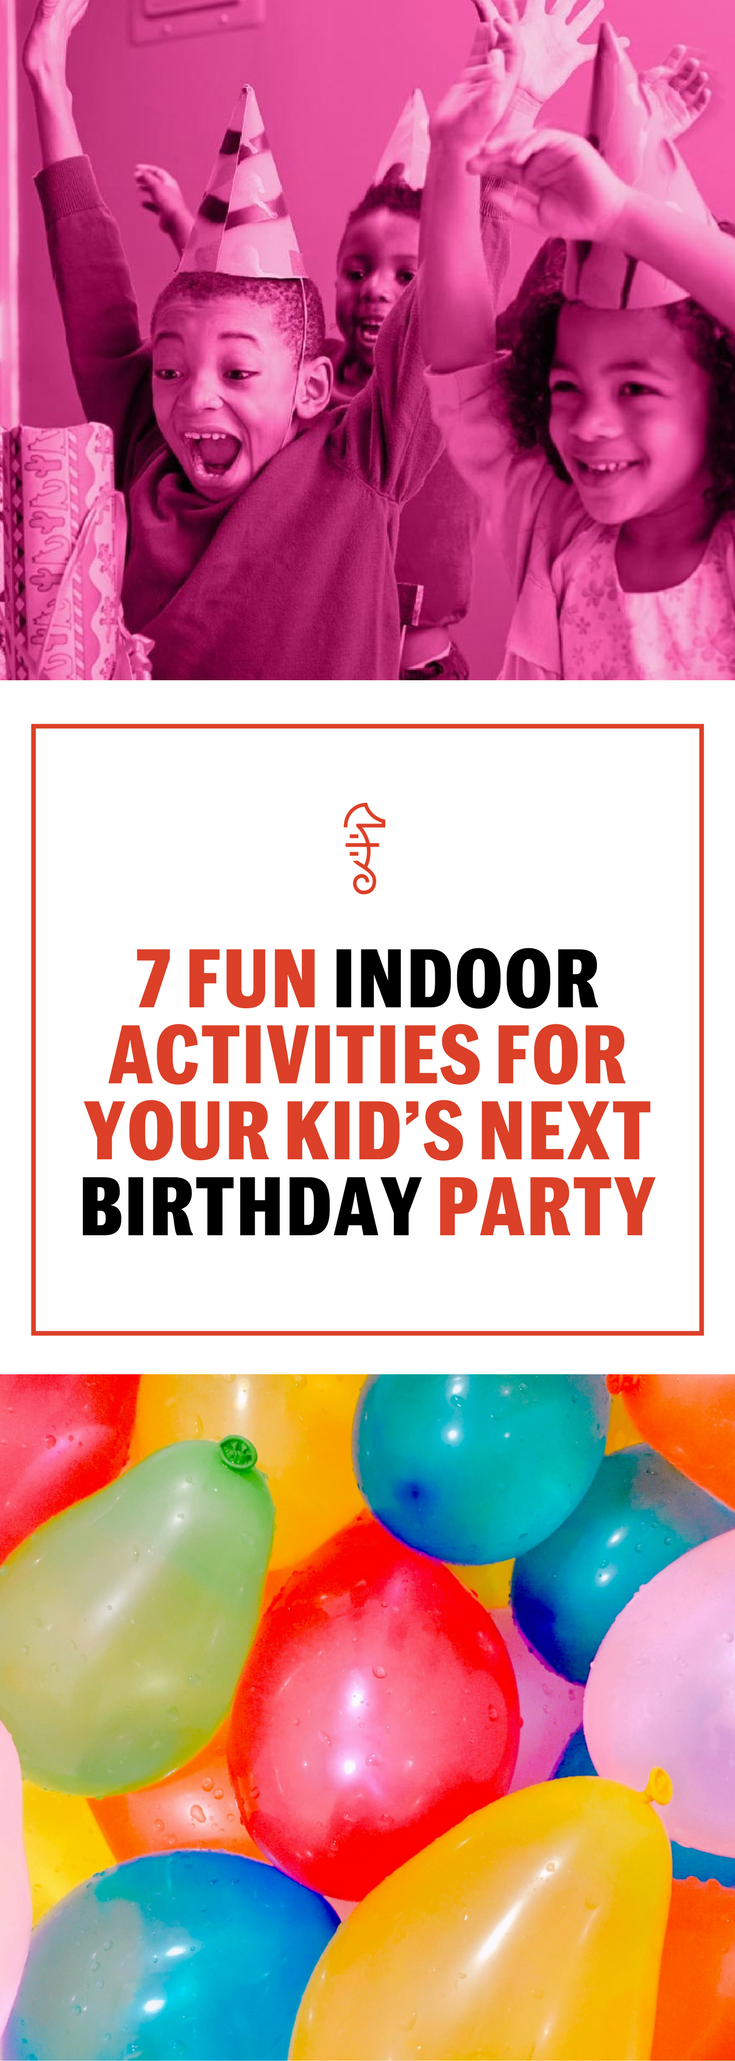 14 Fun Indoor Games to Bust out at Your Kid's Next